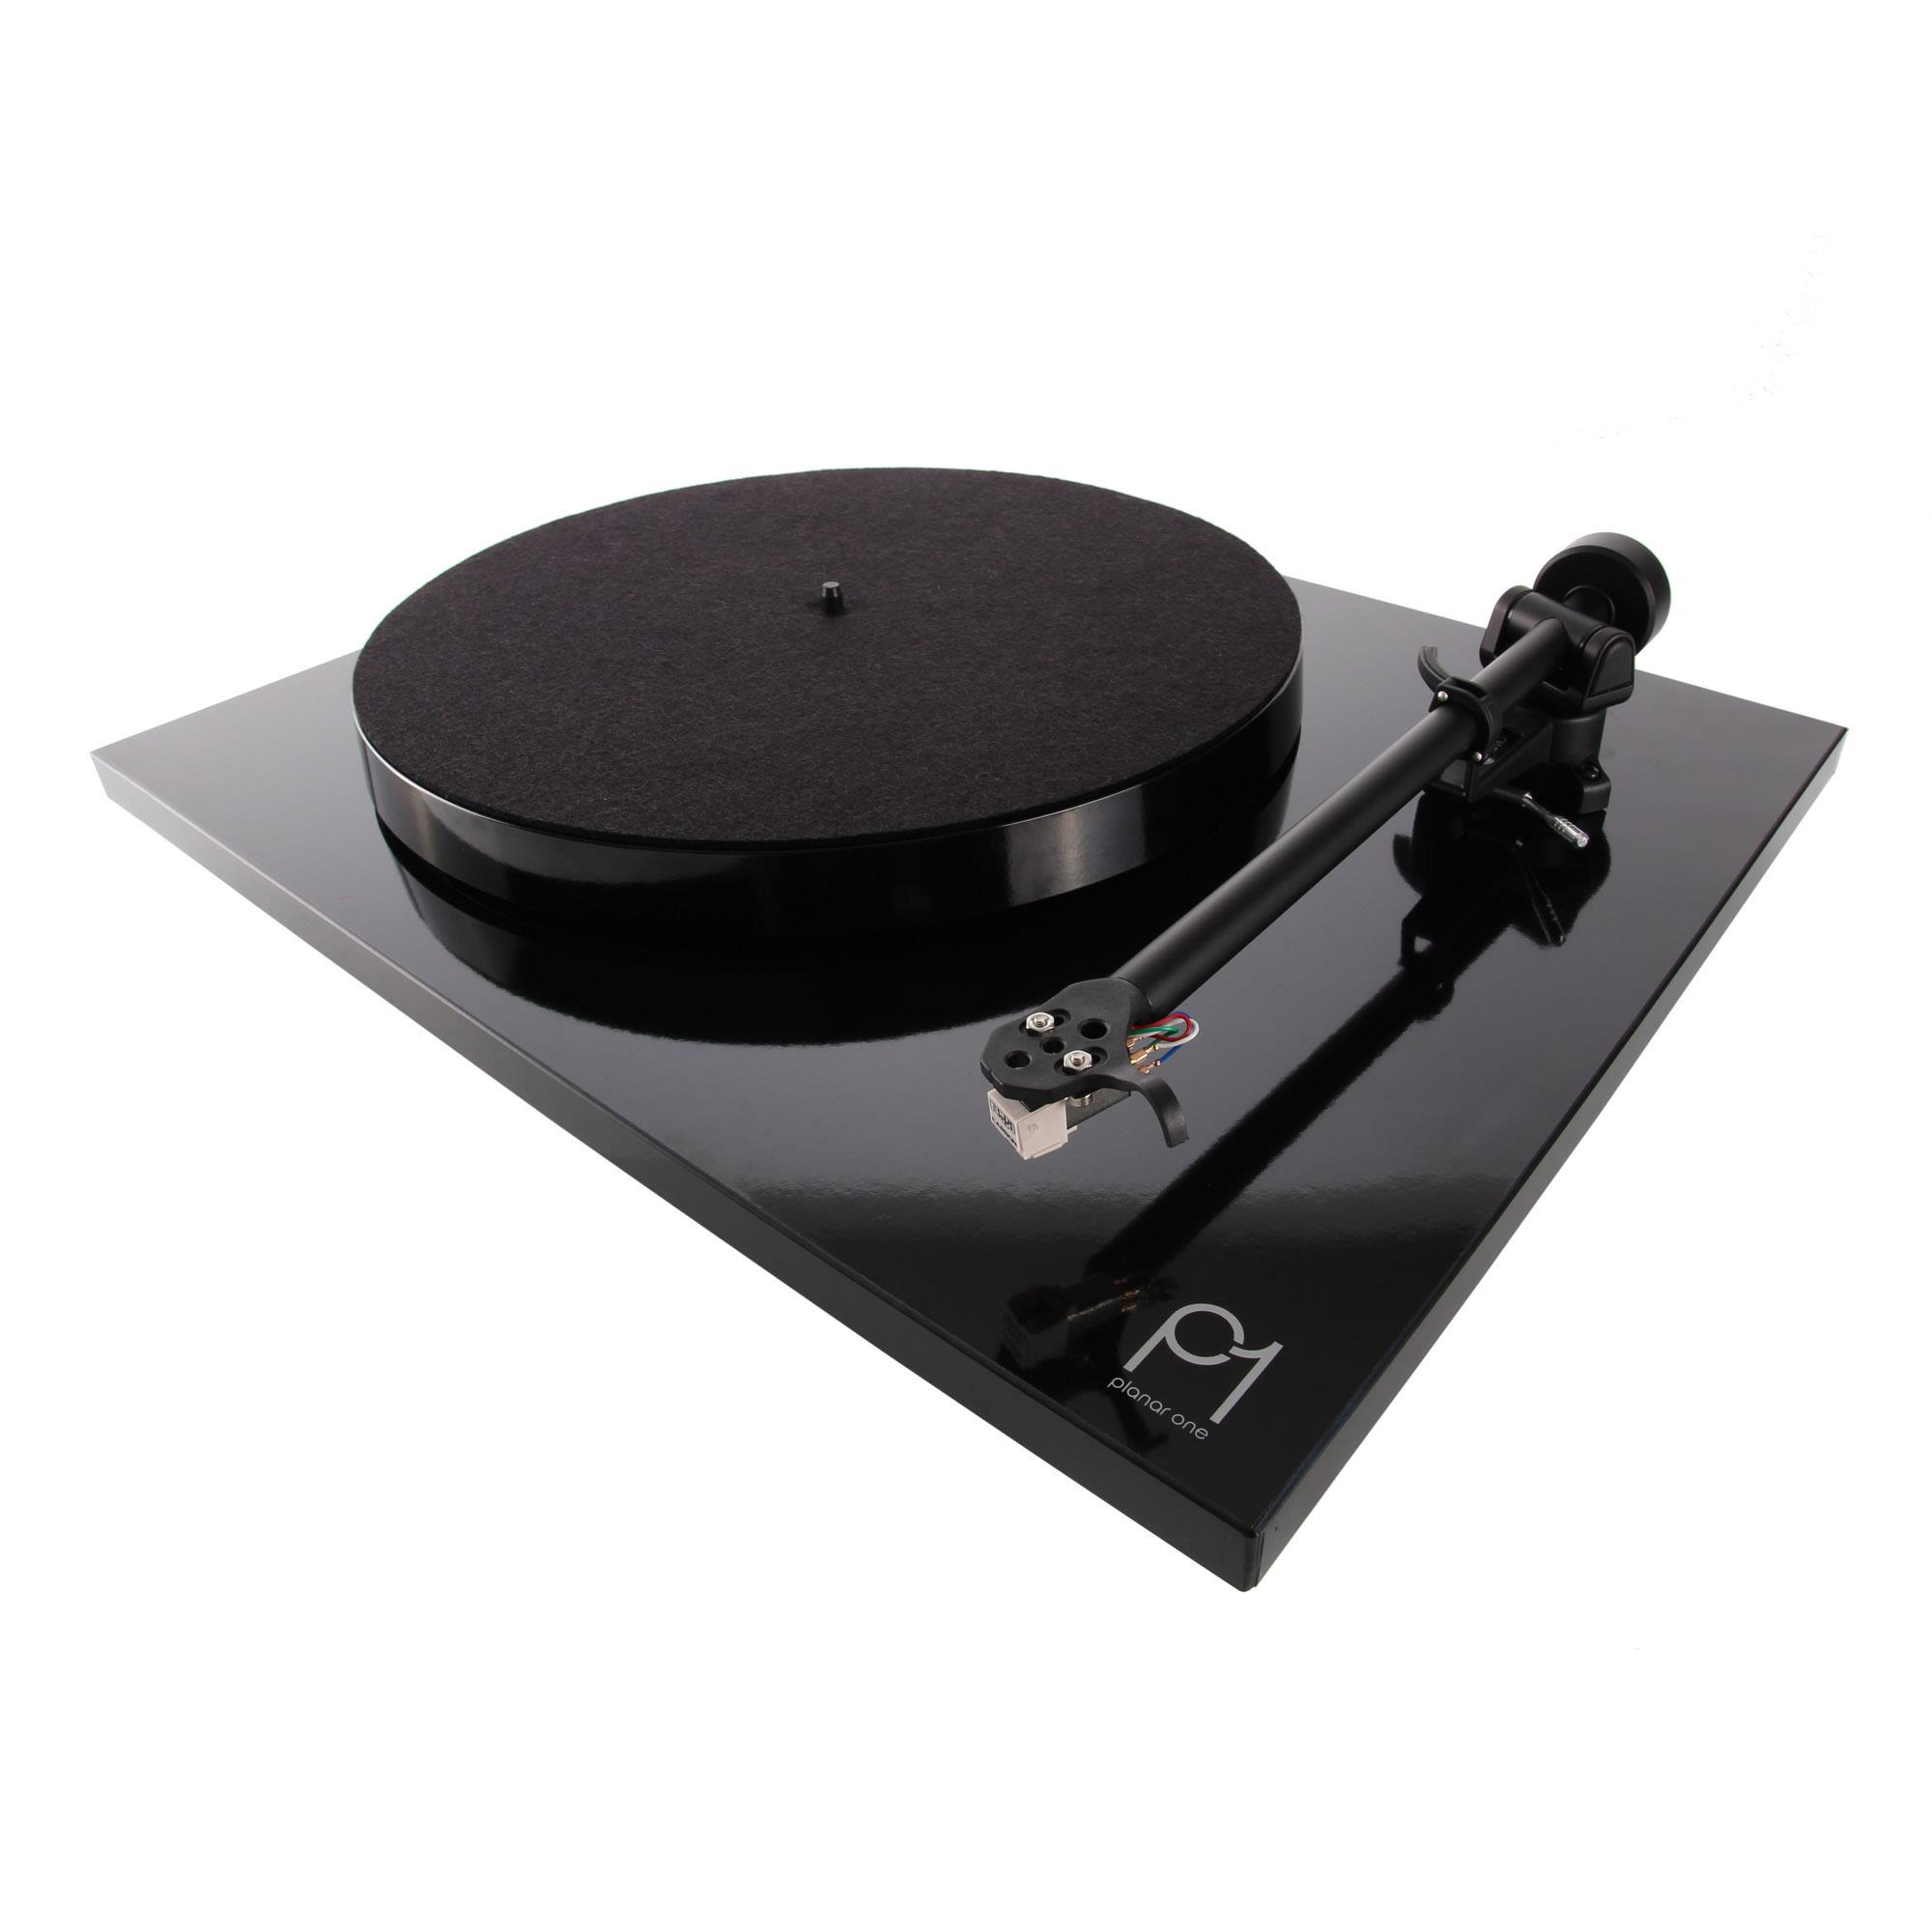 Rega - Planar 1 Turntable